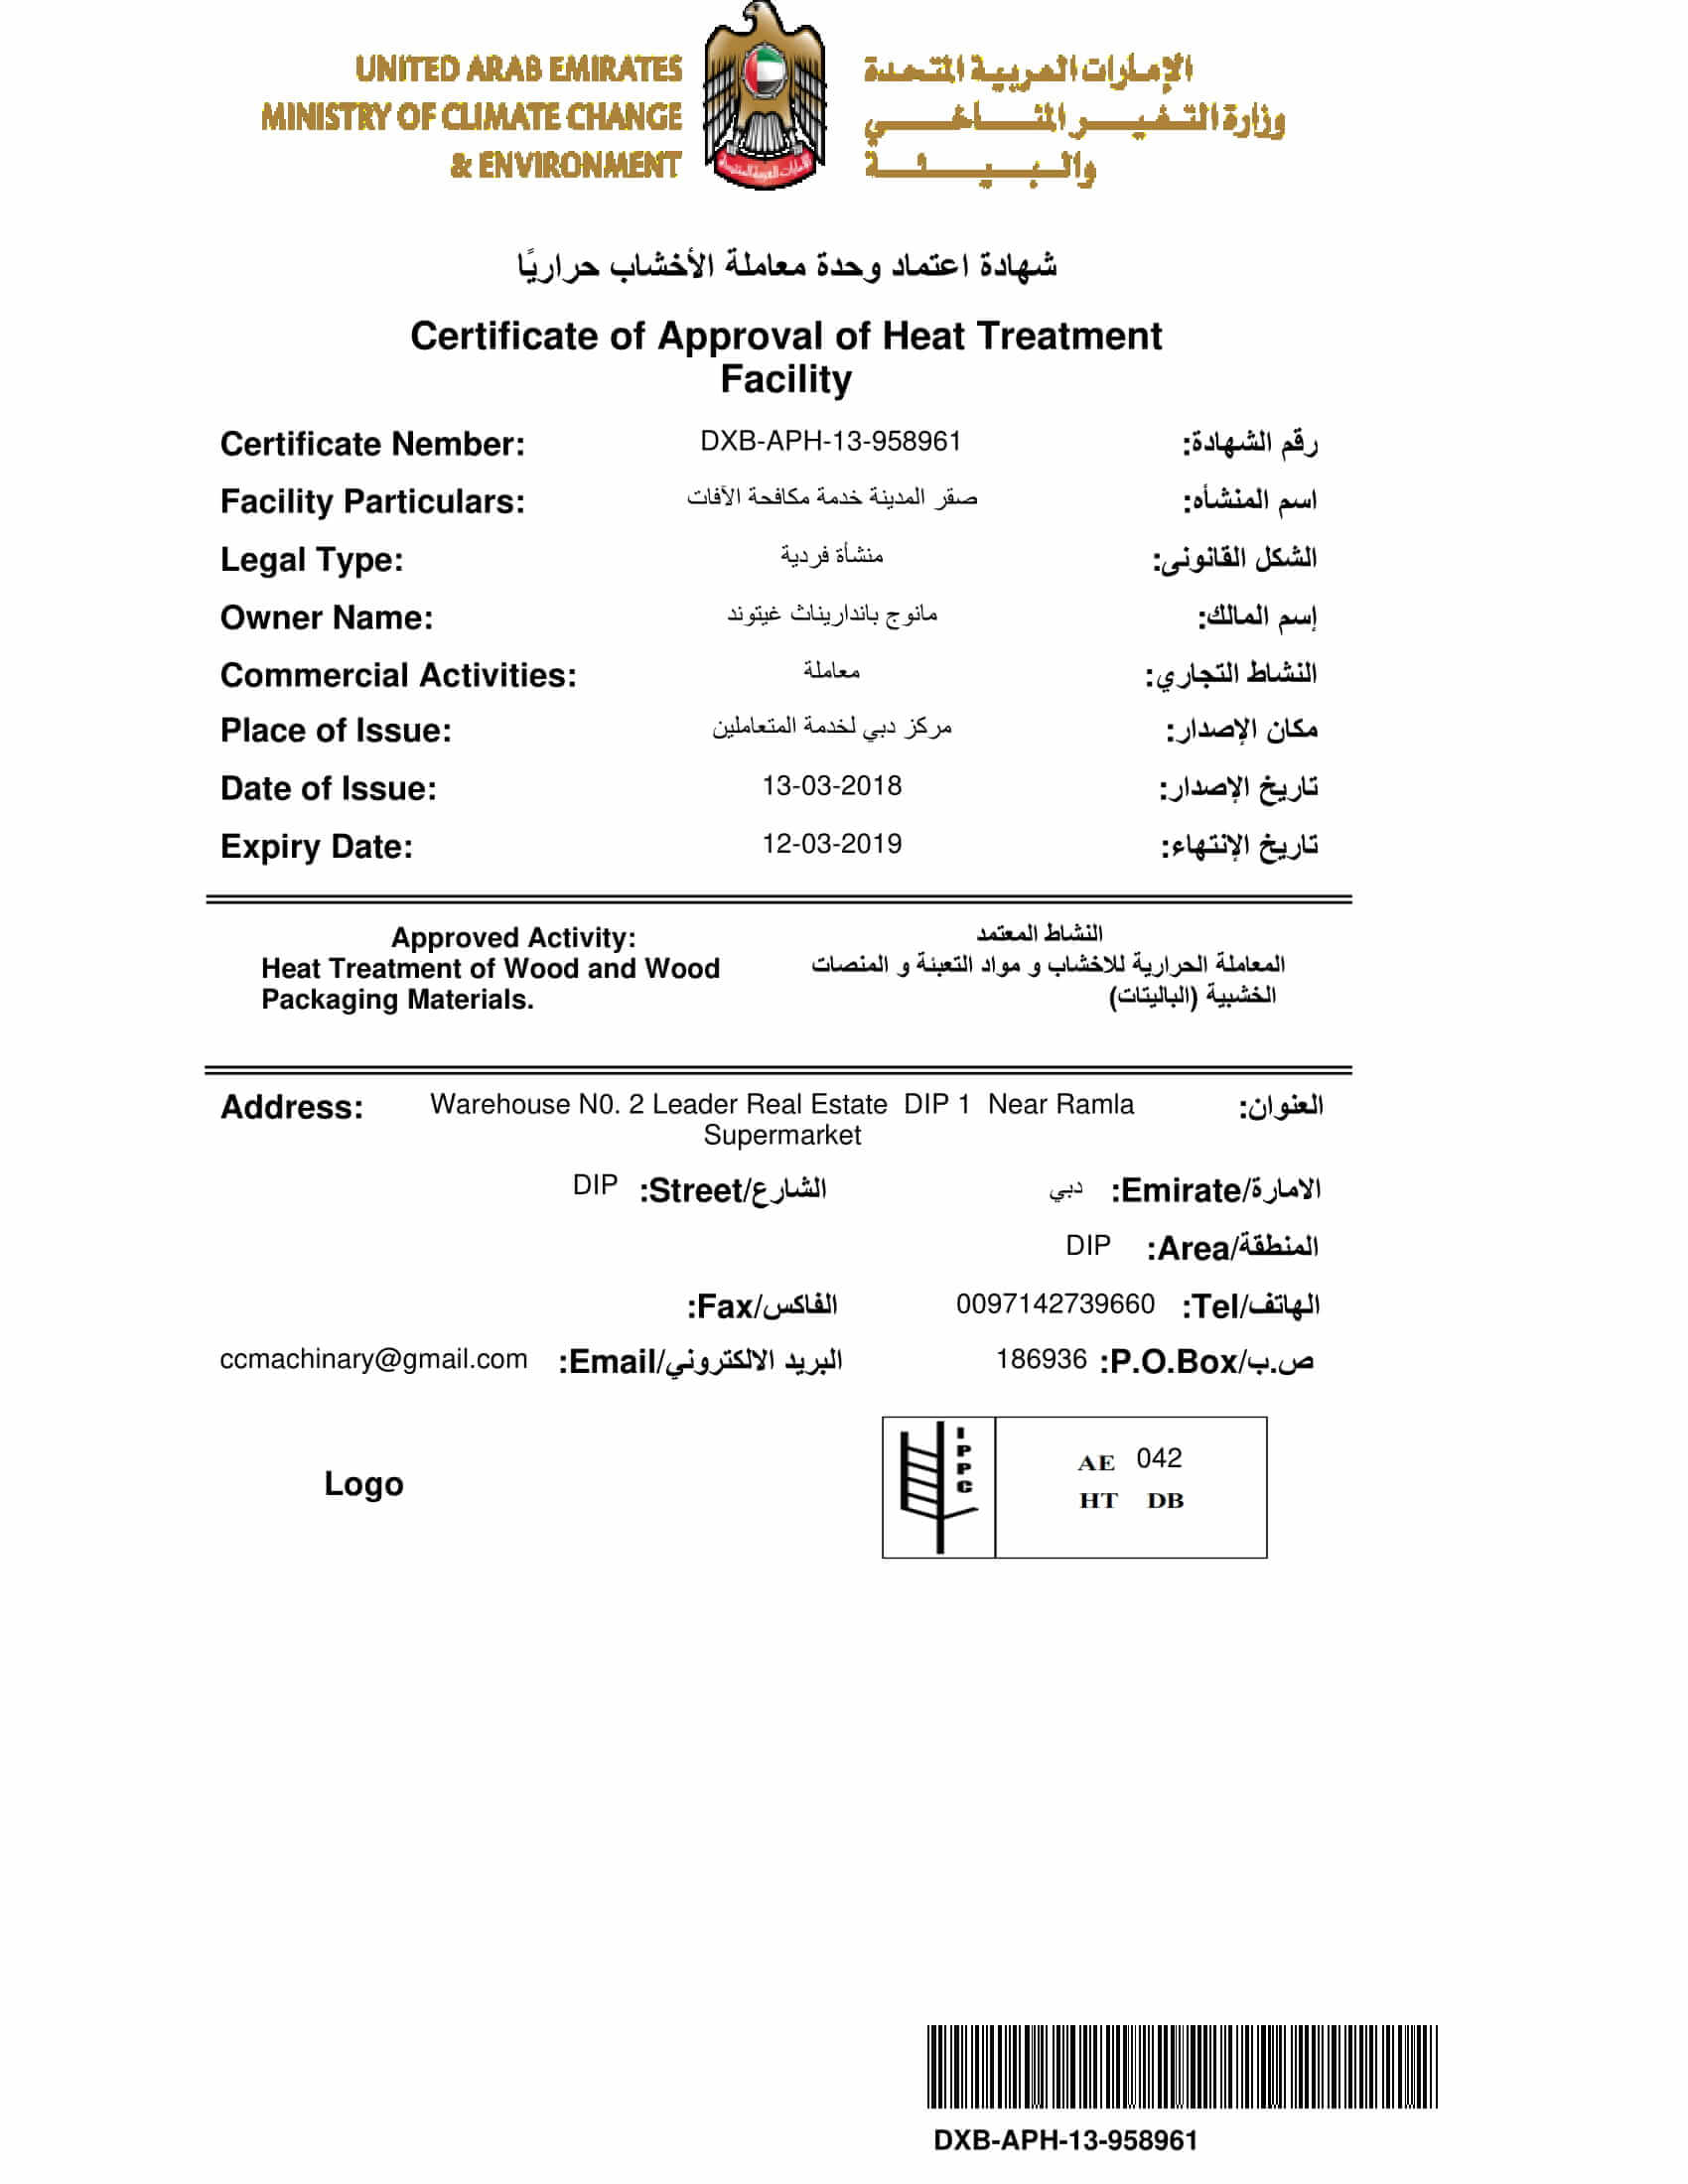 SAQER CERTIFICATE OF APPROVAL OF HEAT TREATMENT FACILITY